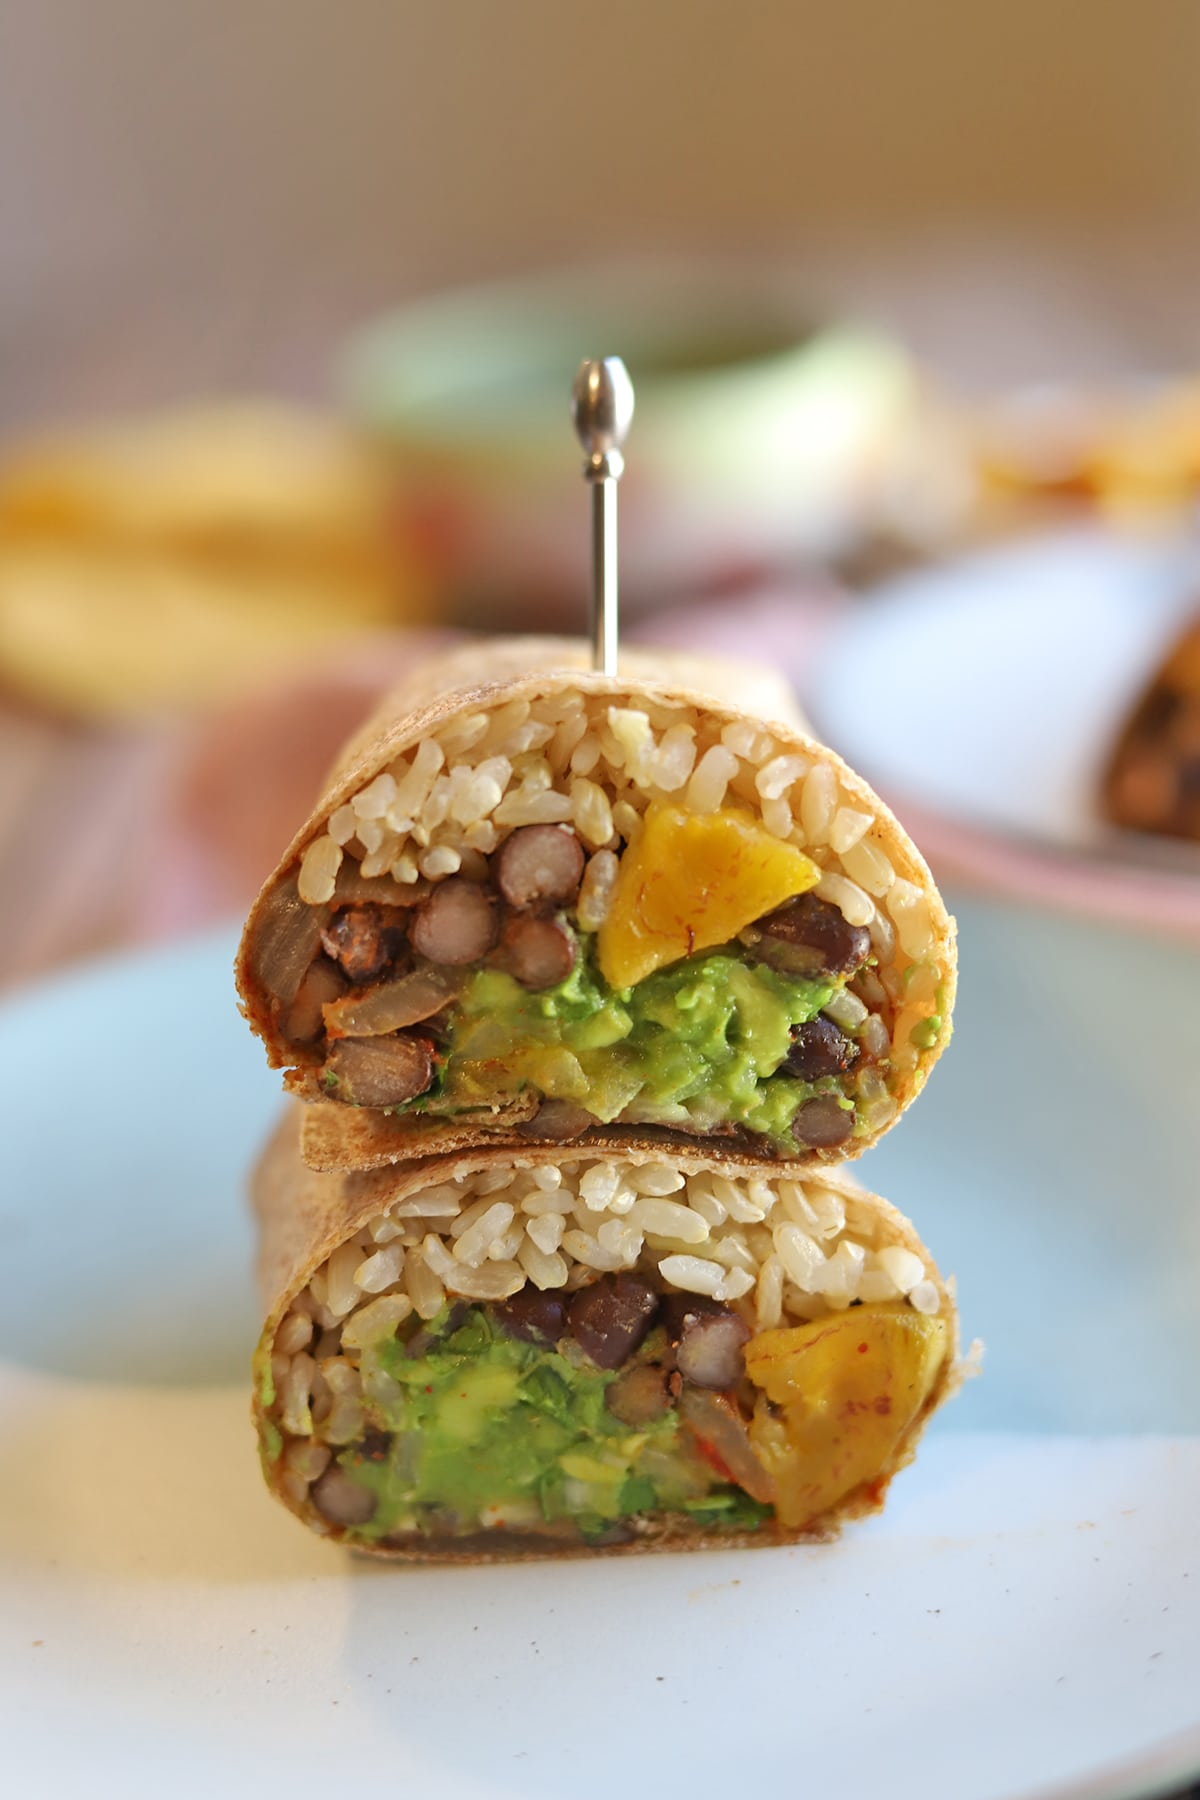 Black bean and rice burrito with plantains and guacamole on plate.